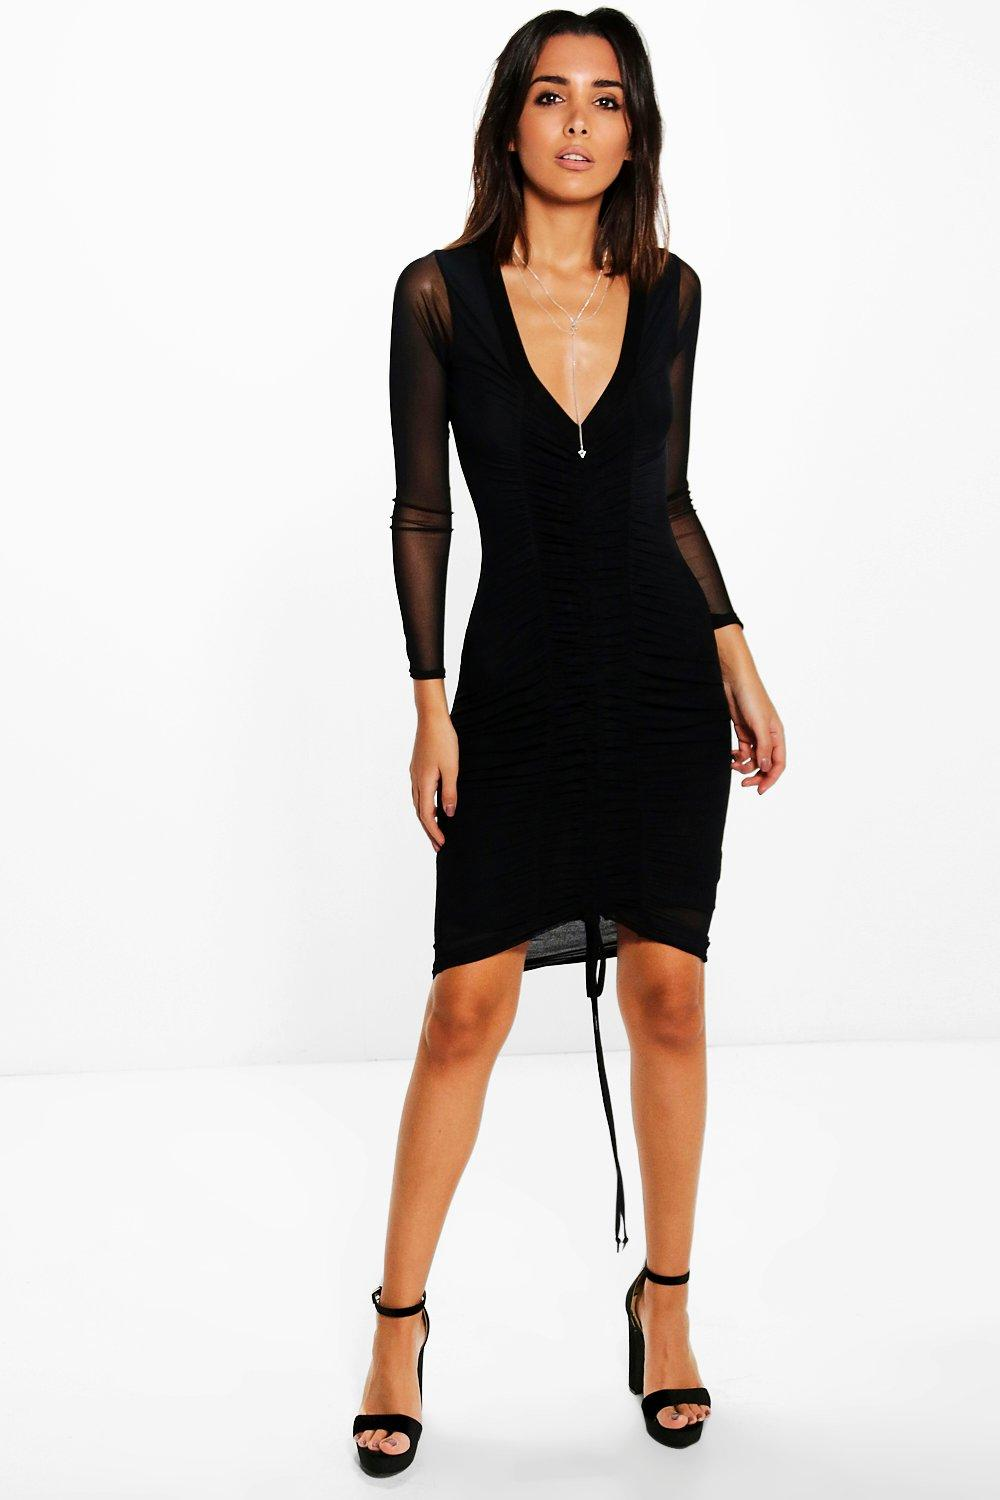 Kim Sheer Mesh Rouched Detail Bodycon Dress